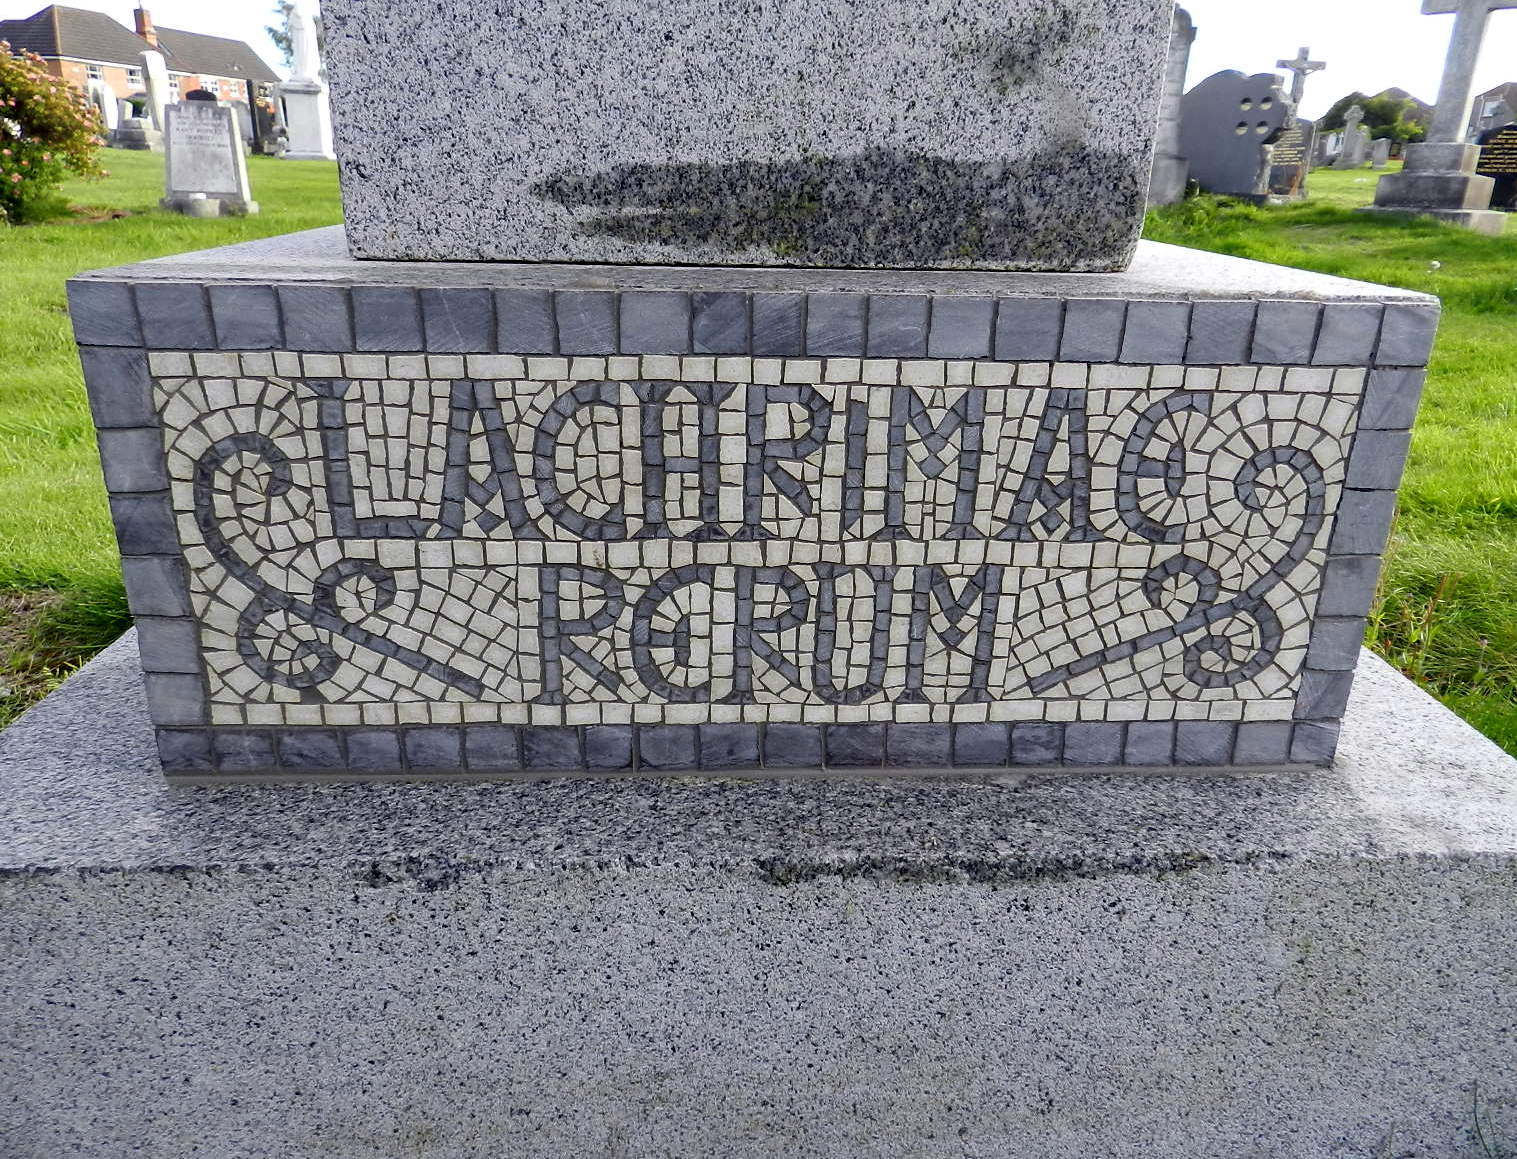 Mosaic headstones: ancient and modern